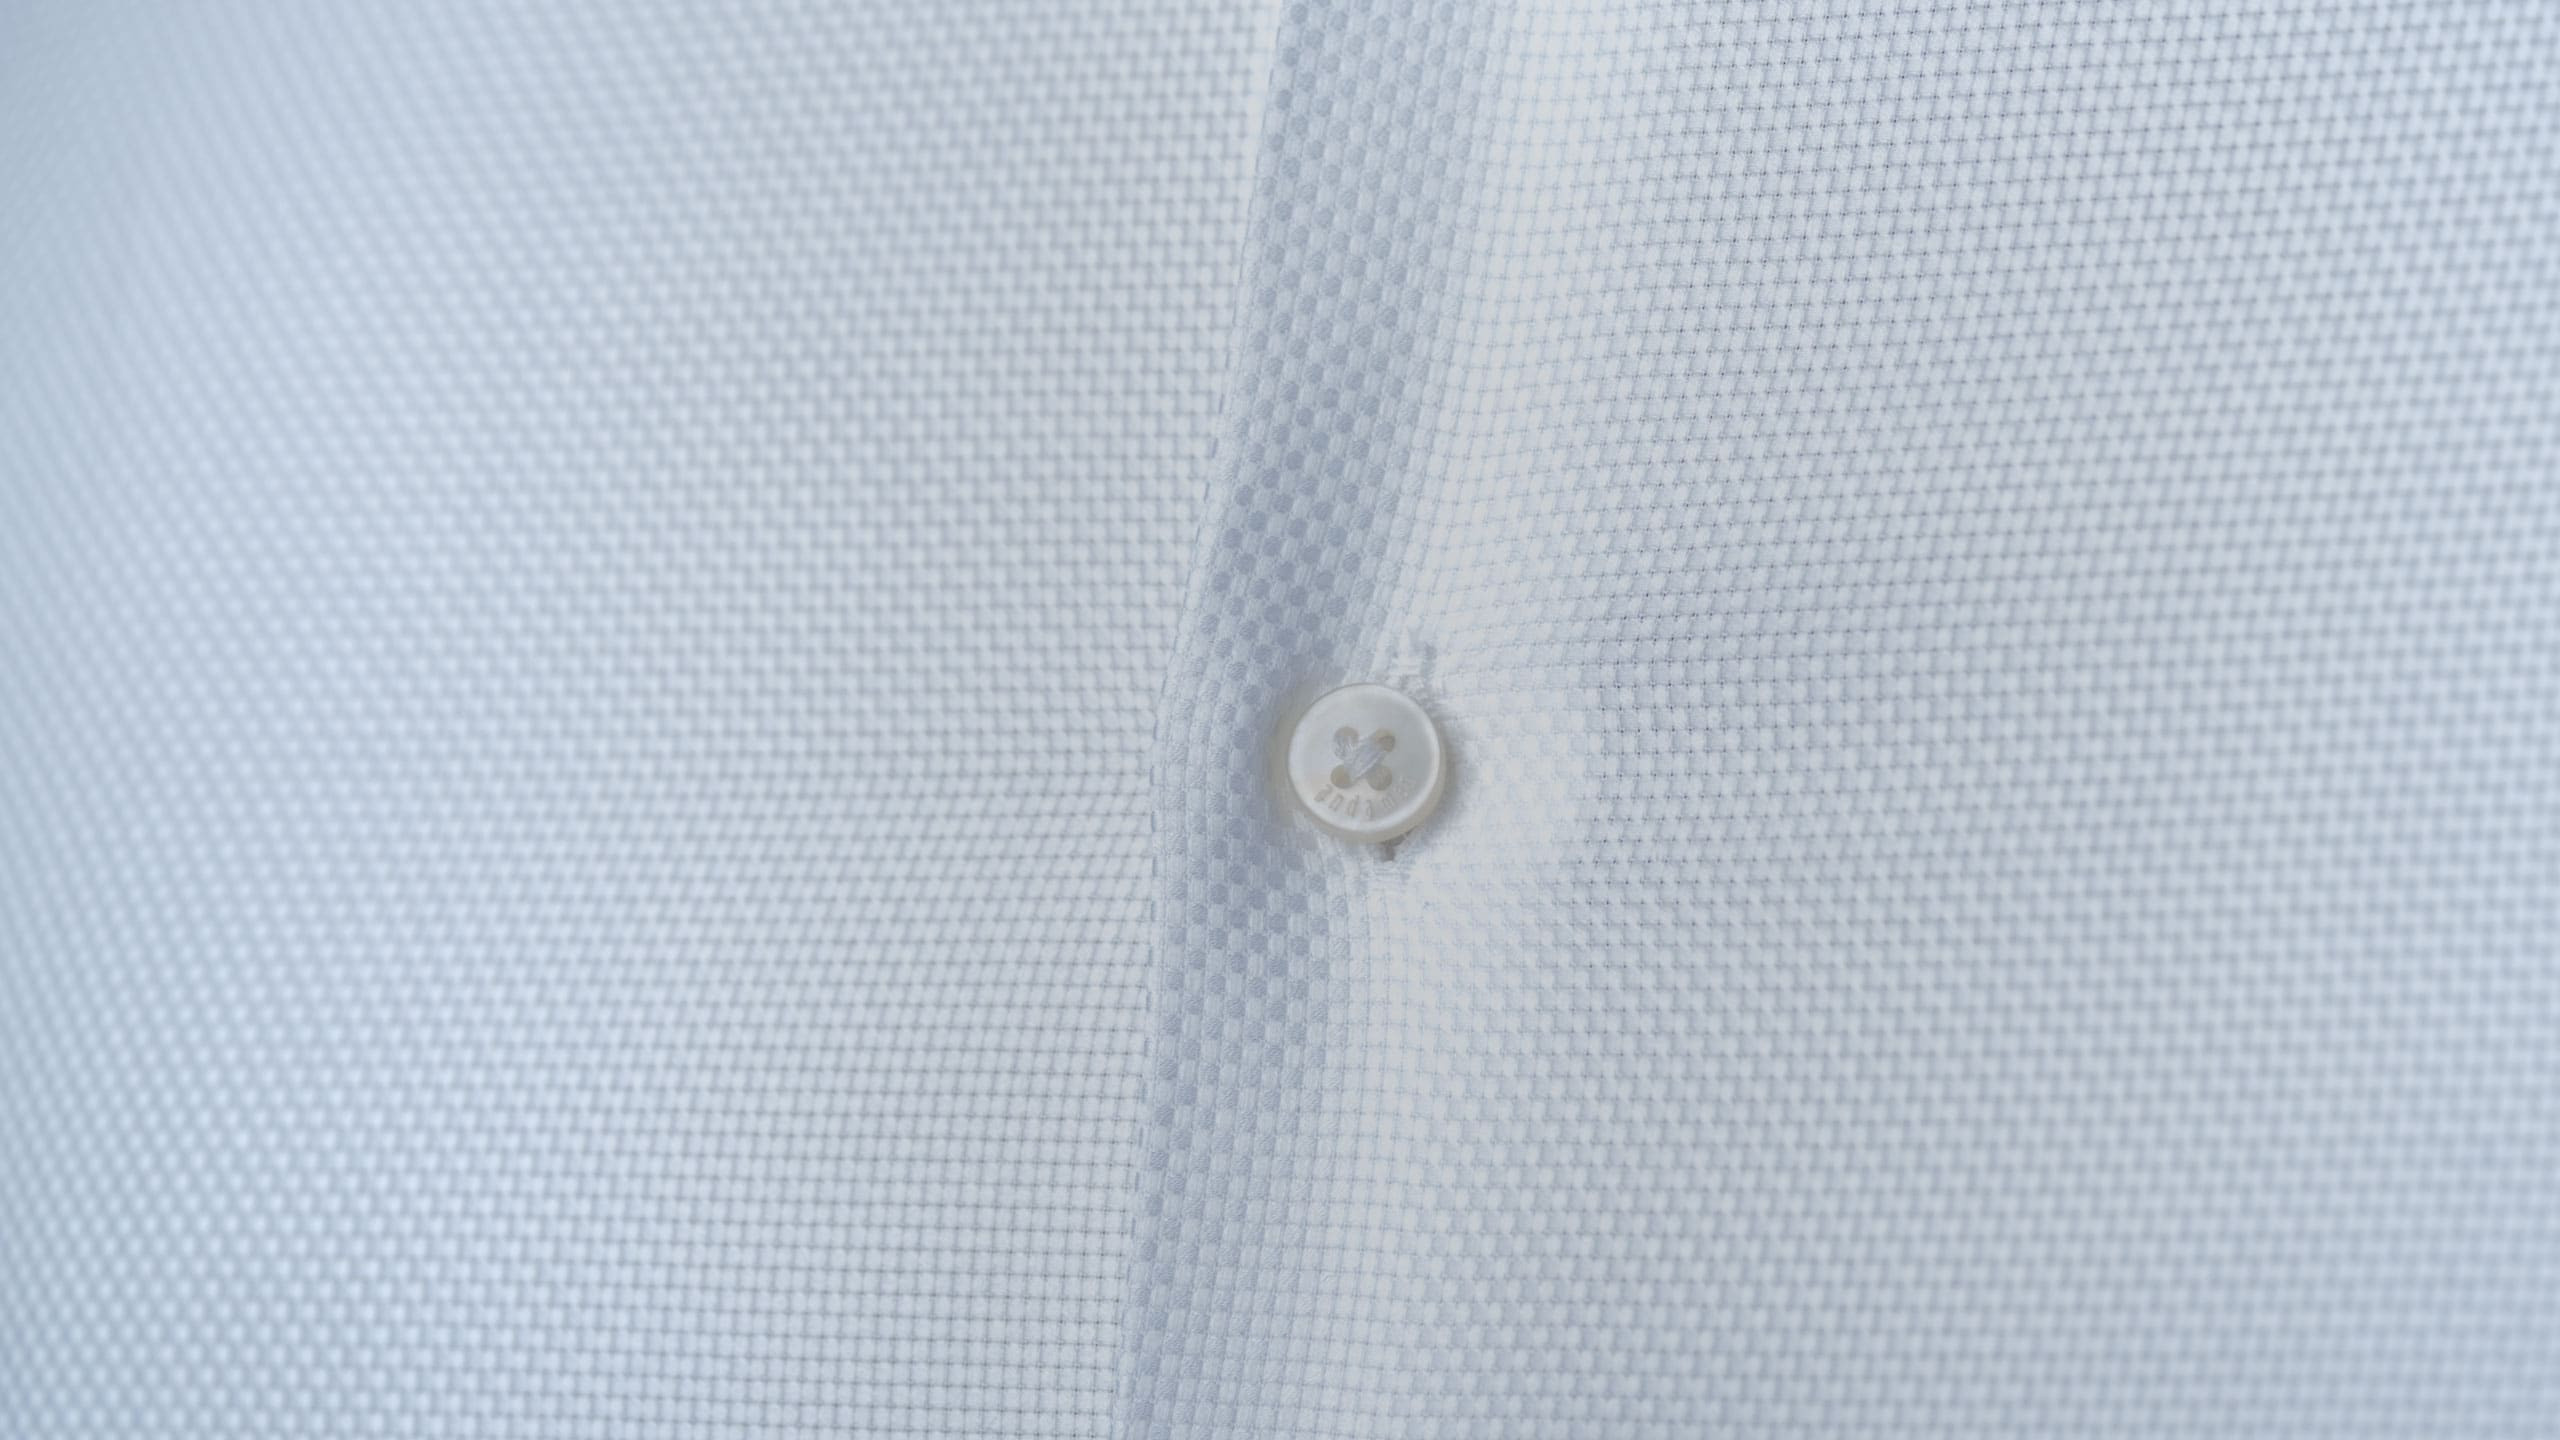 Buy The Essential French Cuff shirt online